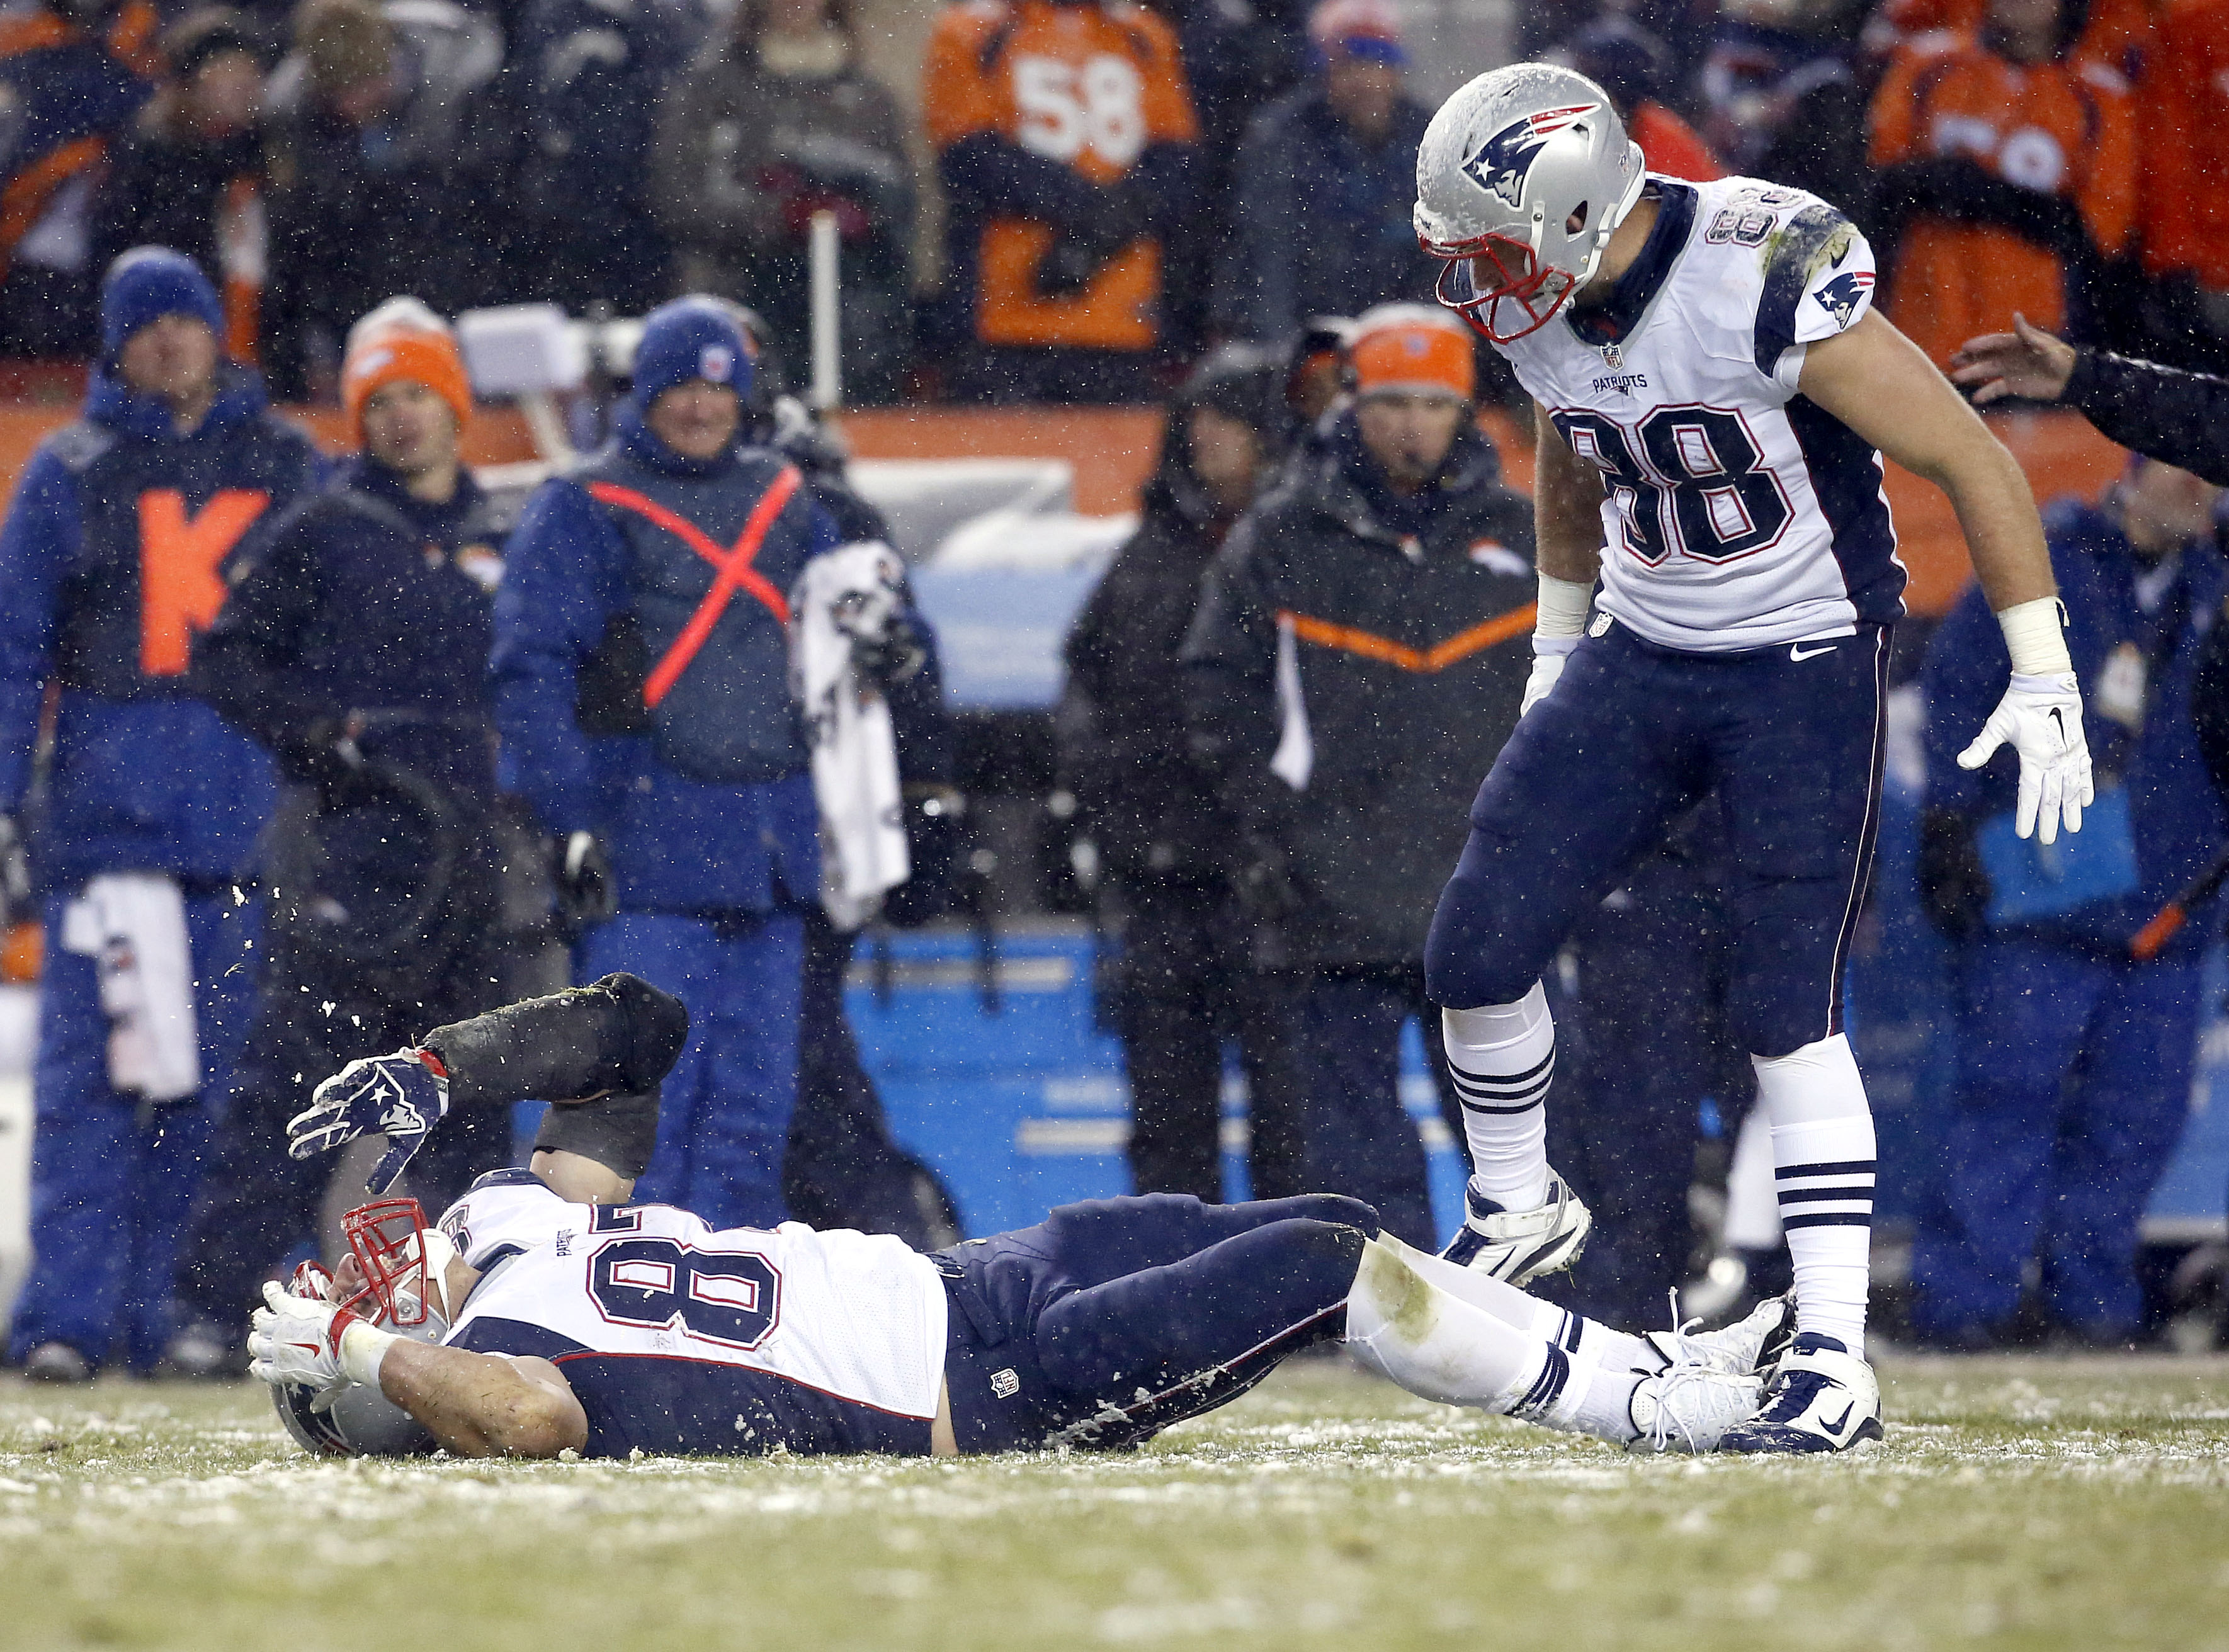 New England Patriots tight end Rob Gronkowski (87) lies injured on the field against the Denver Broncos as teammate tight end Scott Chandler (88) trees to help him up during the second half of an NFL football game, Sunday, Nov. 29, 2015, in Denver. (AP Ph